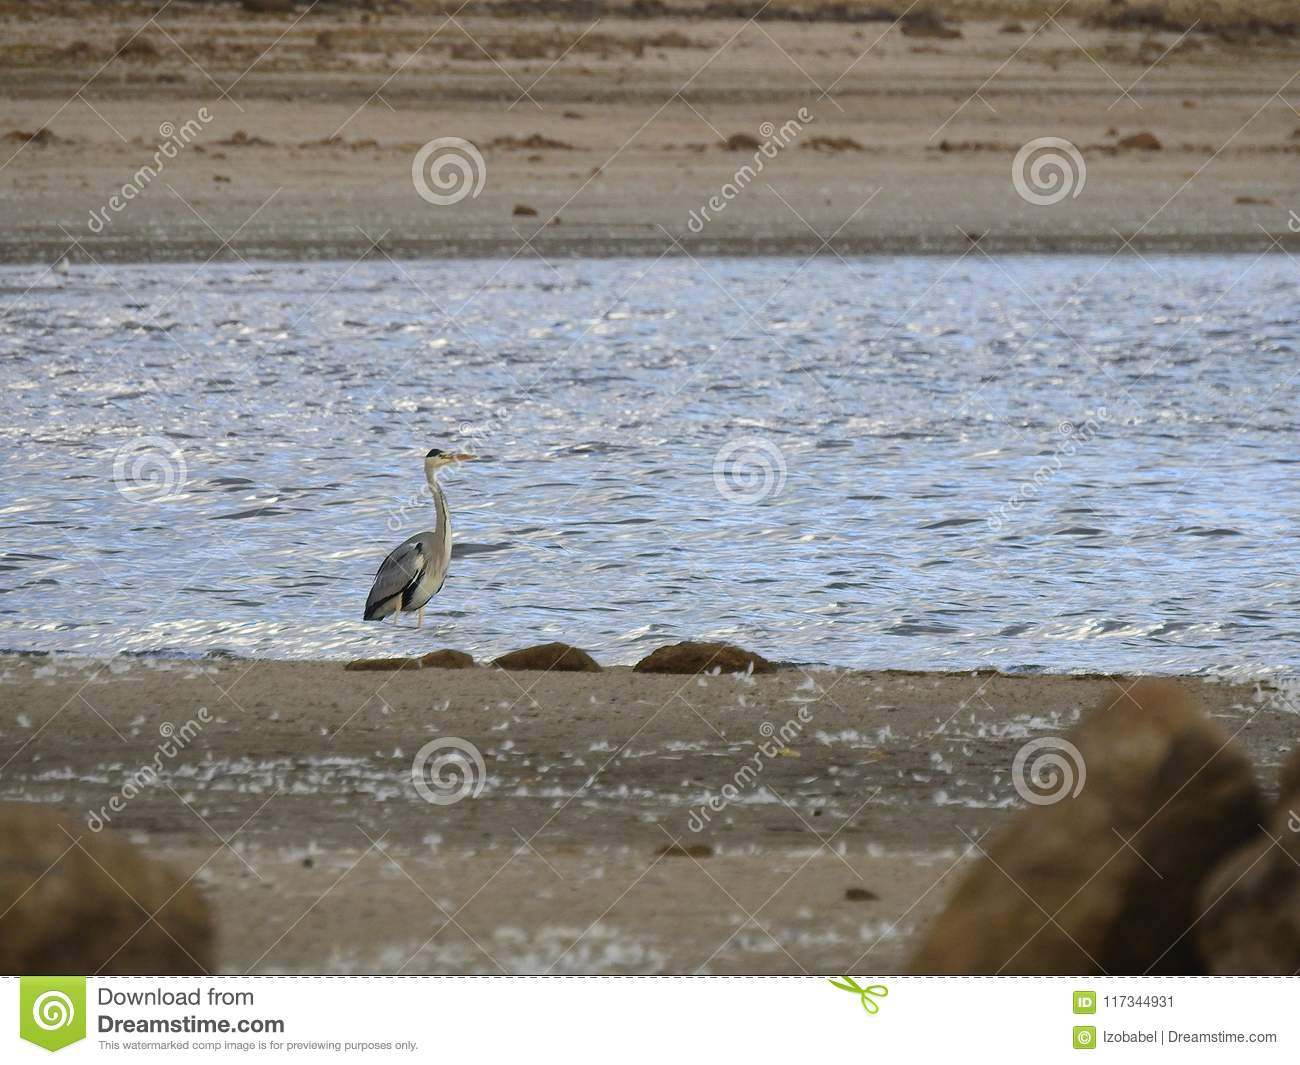 The heron rest